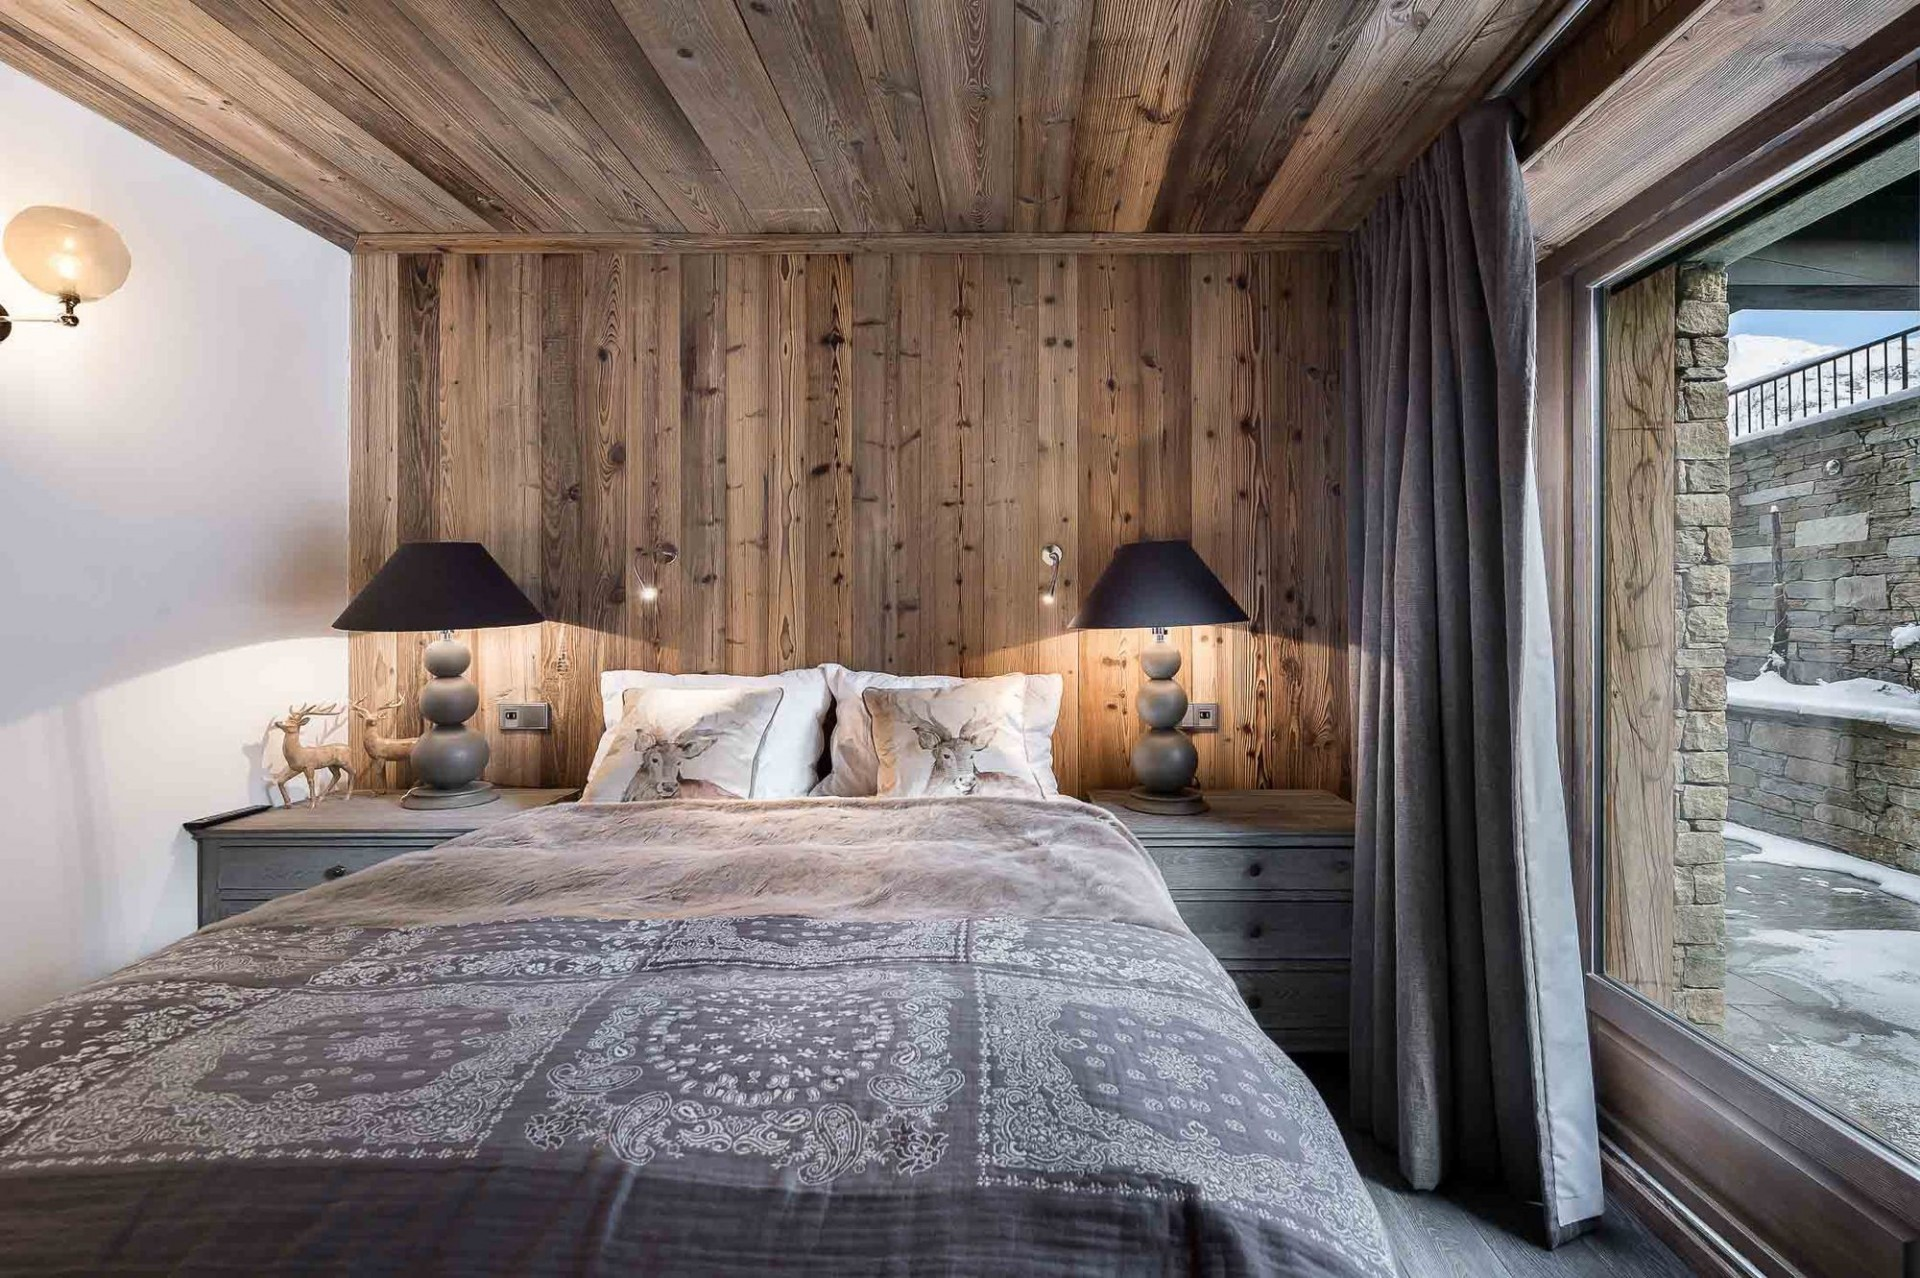 Val d'Isère Location Appartement Luxe Ulilite Chambre 2